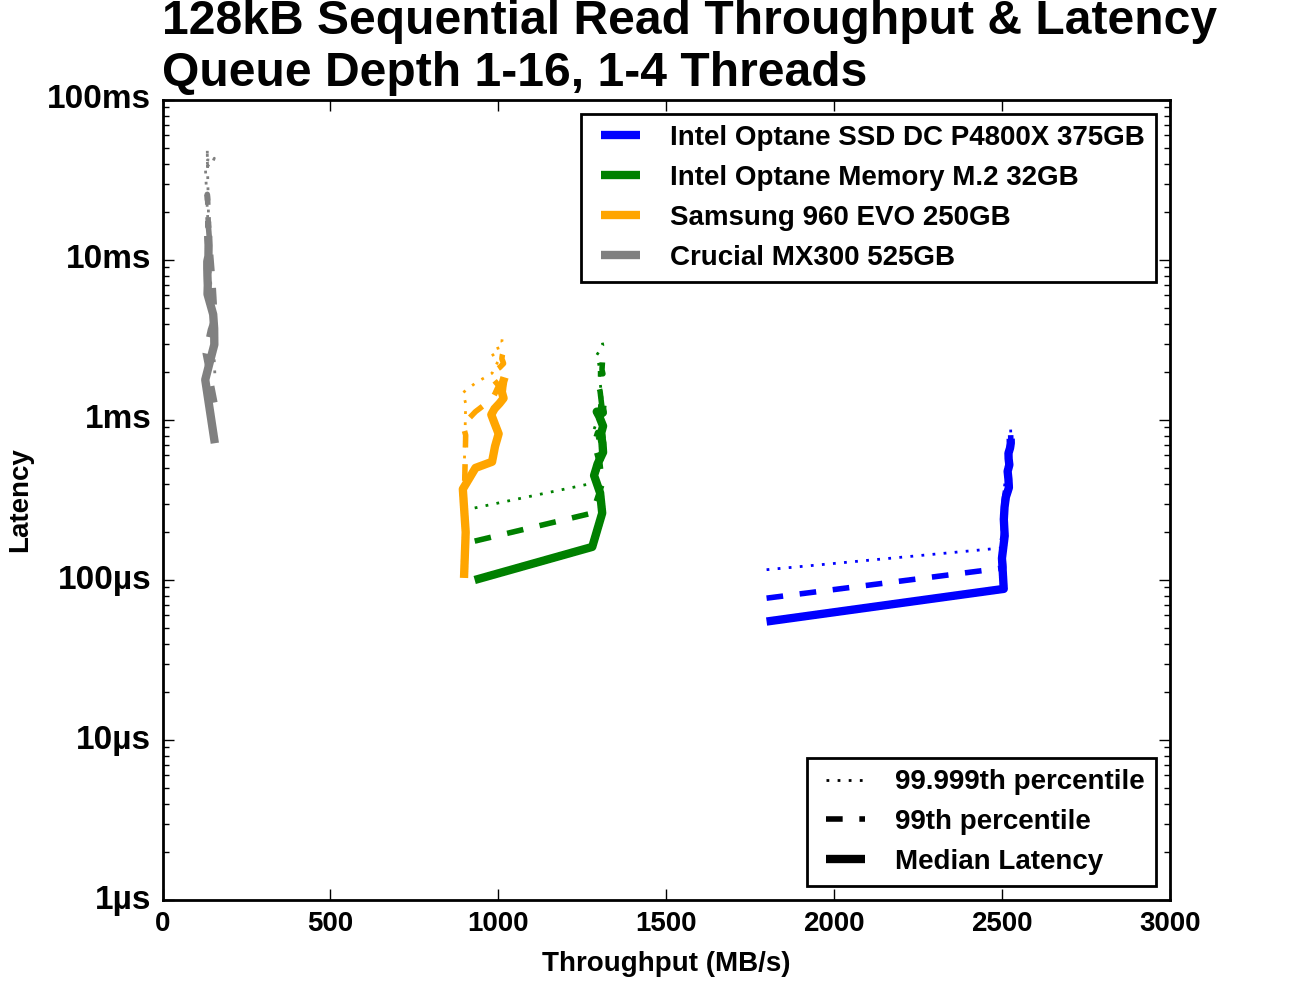 Sequential Access Performance The Intel Optane Memory Ssd Thread 4way Tele Switch Diagram Each Is Reading Sequentially But From A Different Region Of Drive So Read Commands Receives Are Not Entirely Sorted By Logical